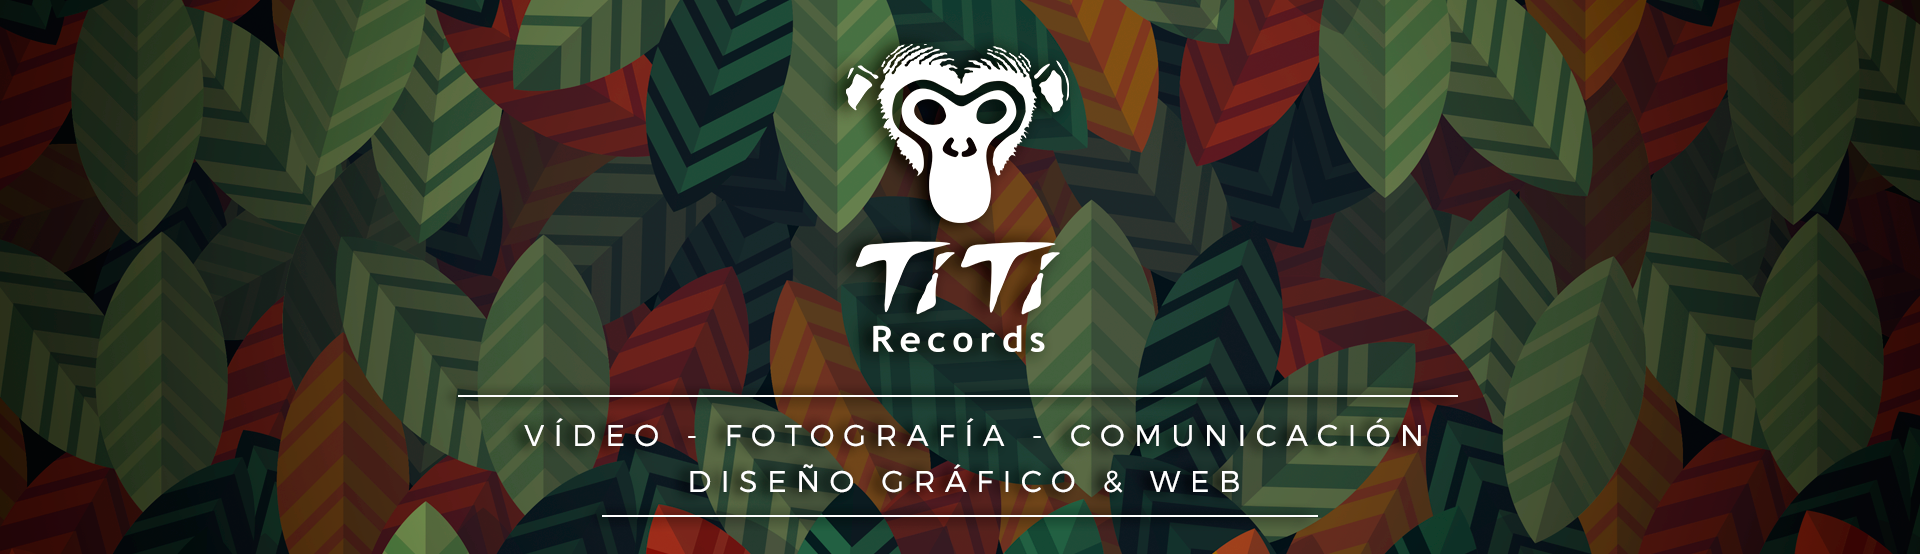 Titi records otoño 2016 audiovisual vídeo